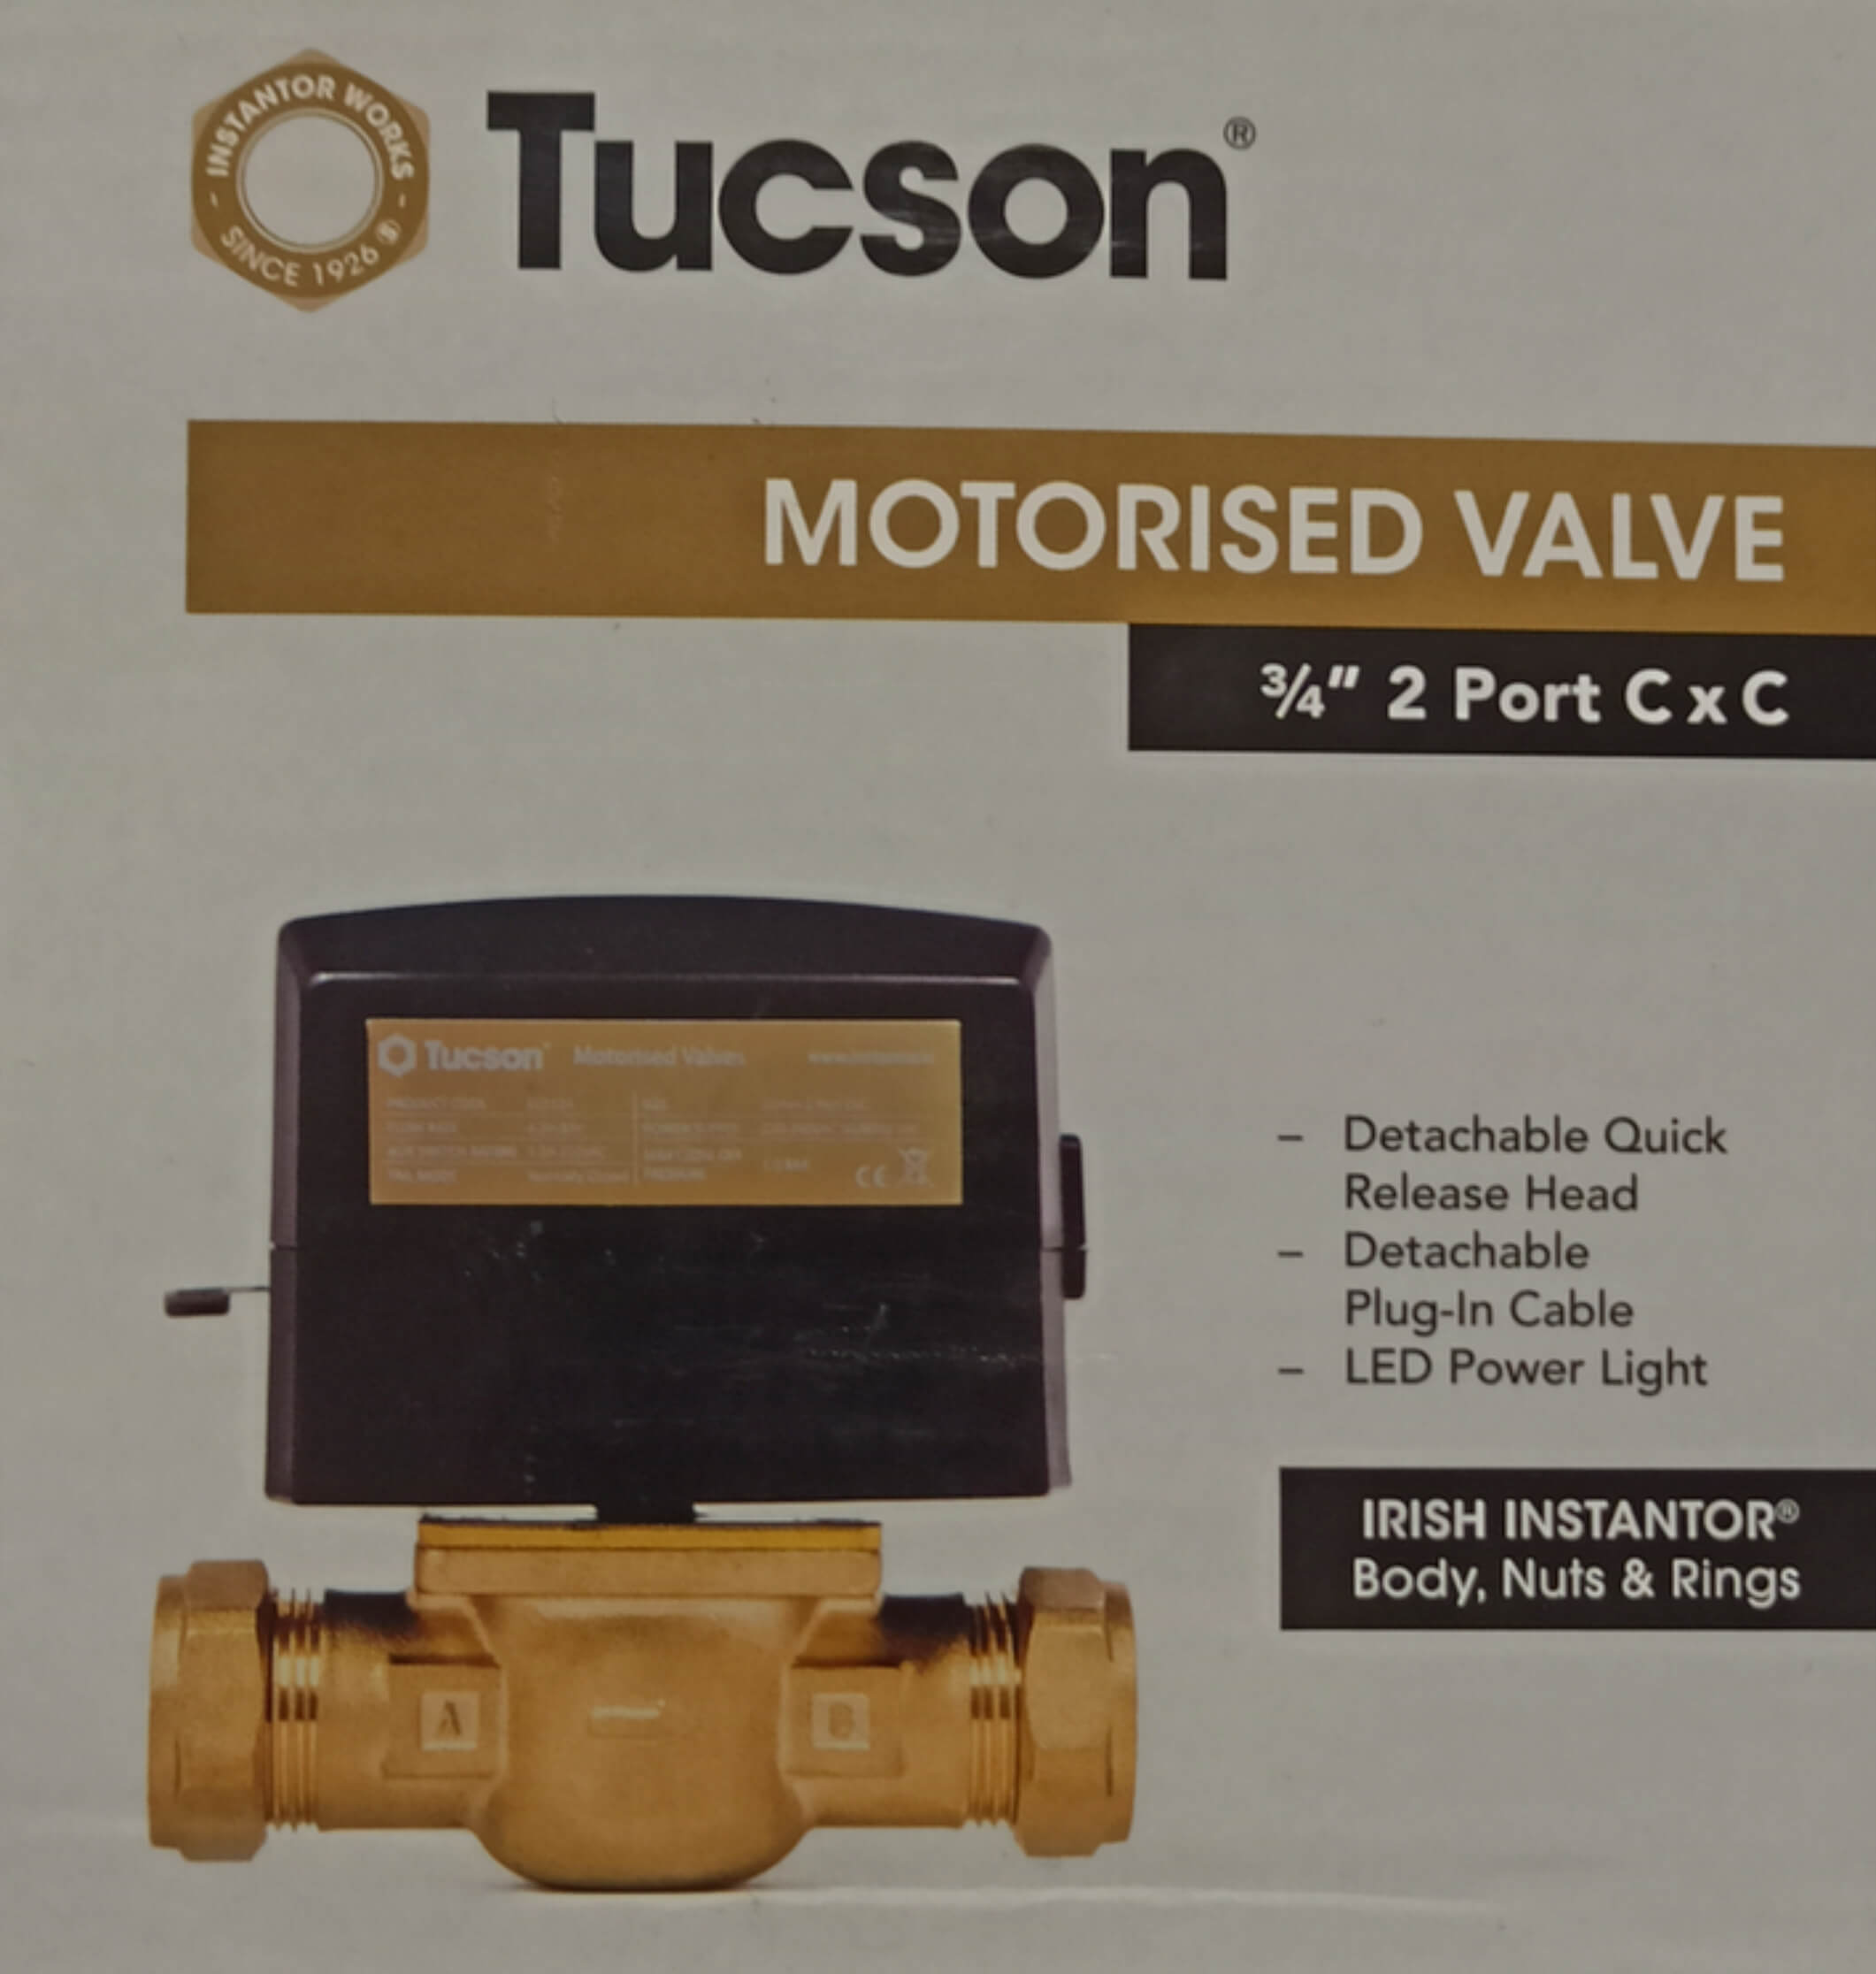 tucson 34 motorised valve